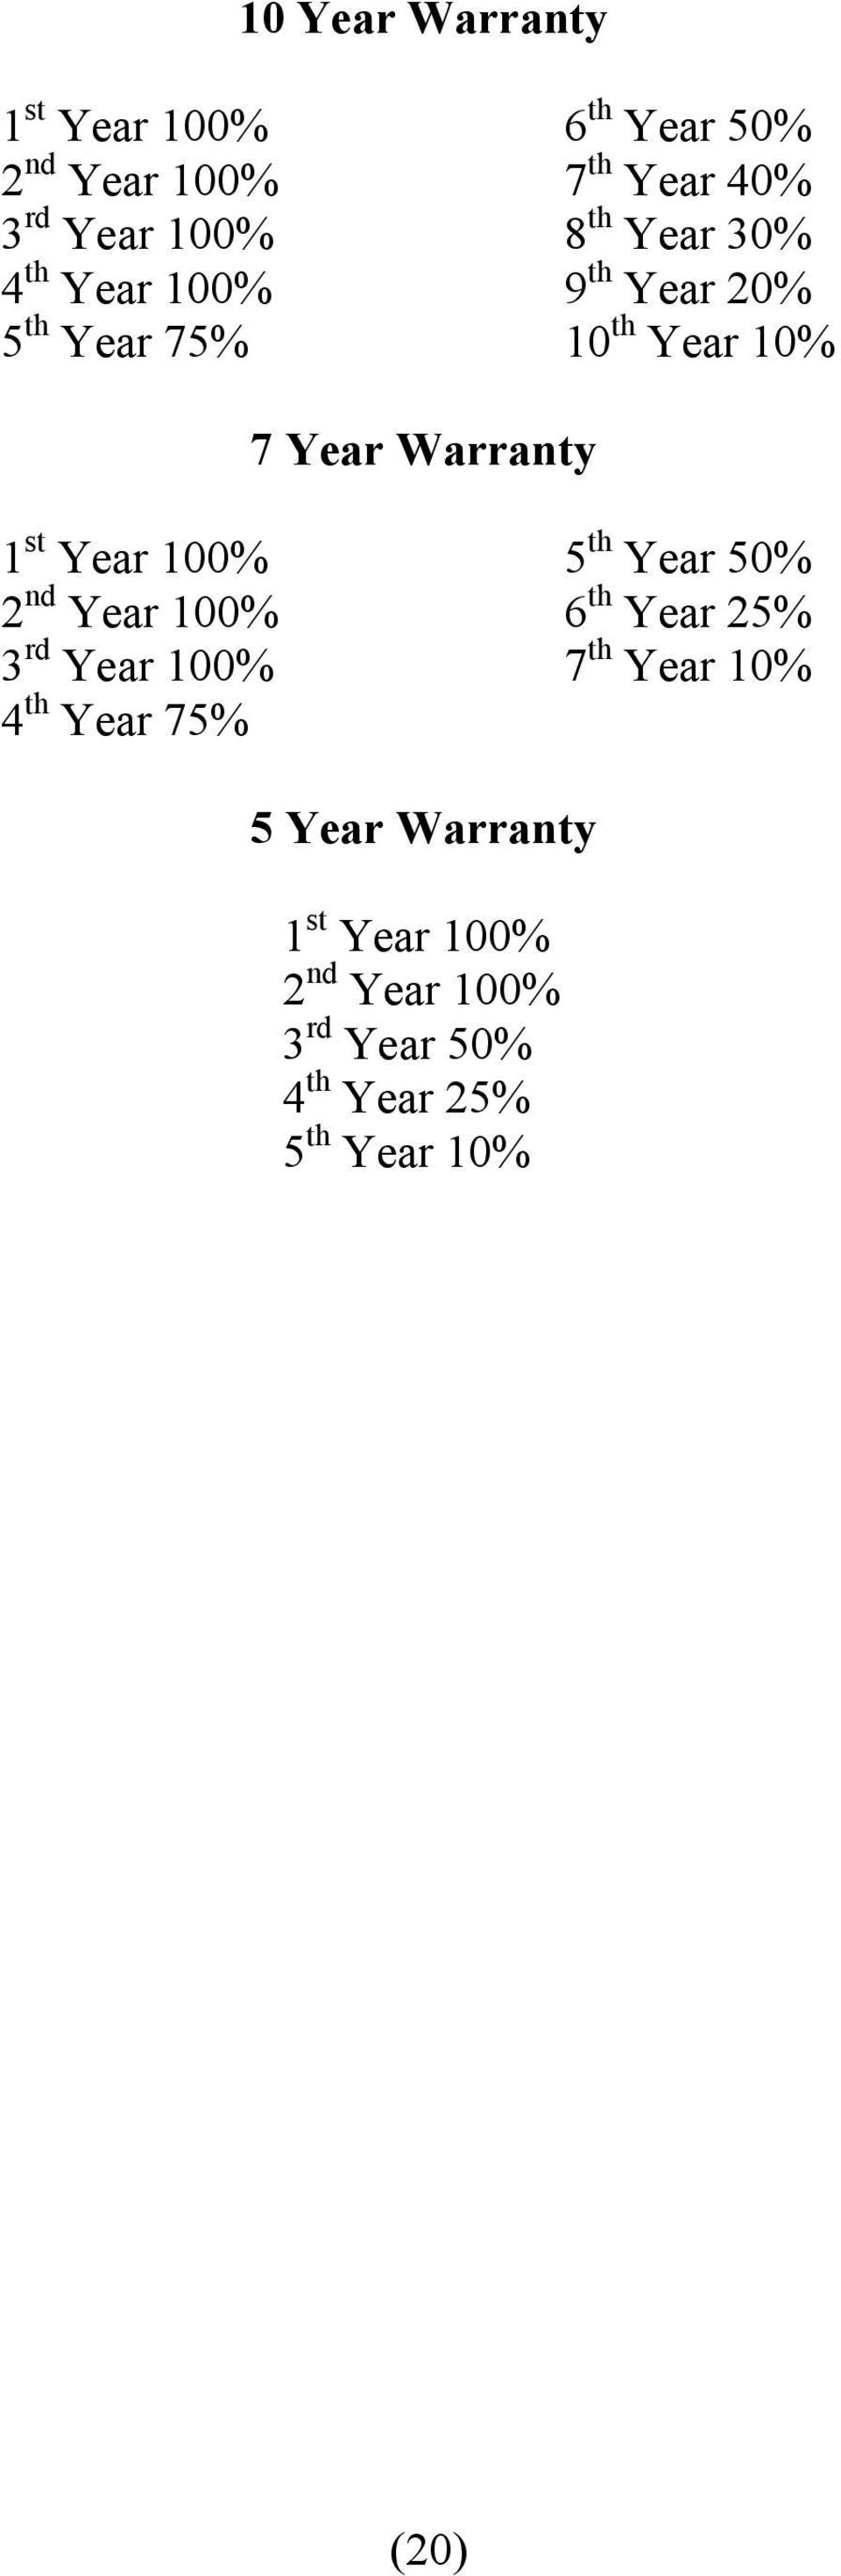 Year 100% 5 th Year 50% 2 nd Year 100% 6 th Year 25% 3 rd Year 100% 7 th Year 10% 4 th Year